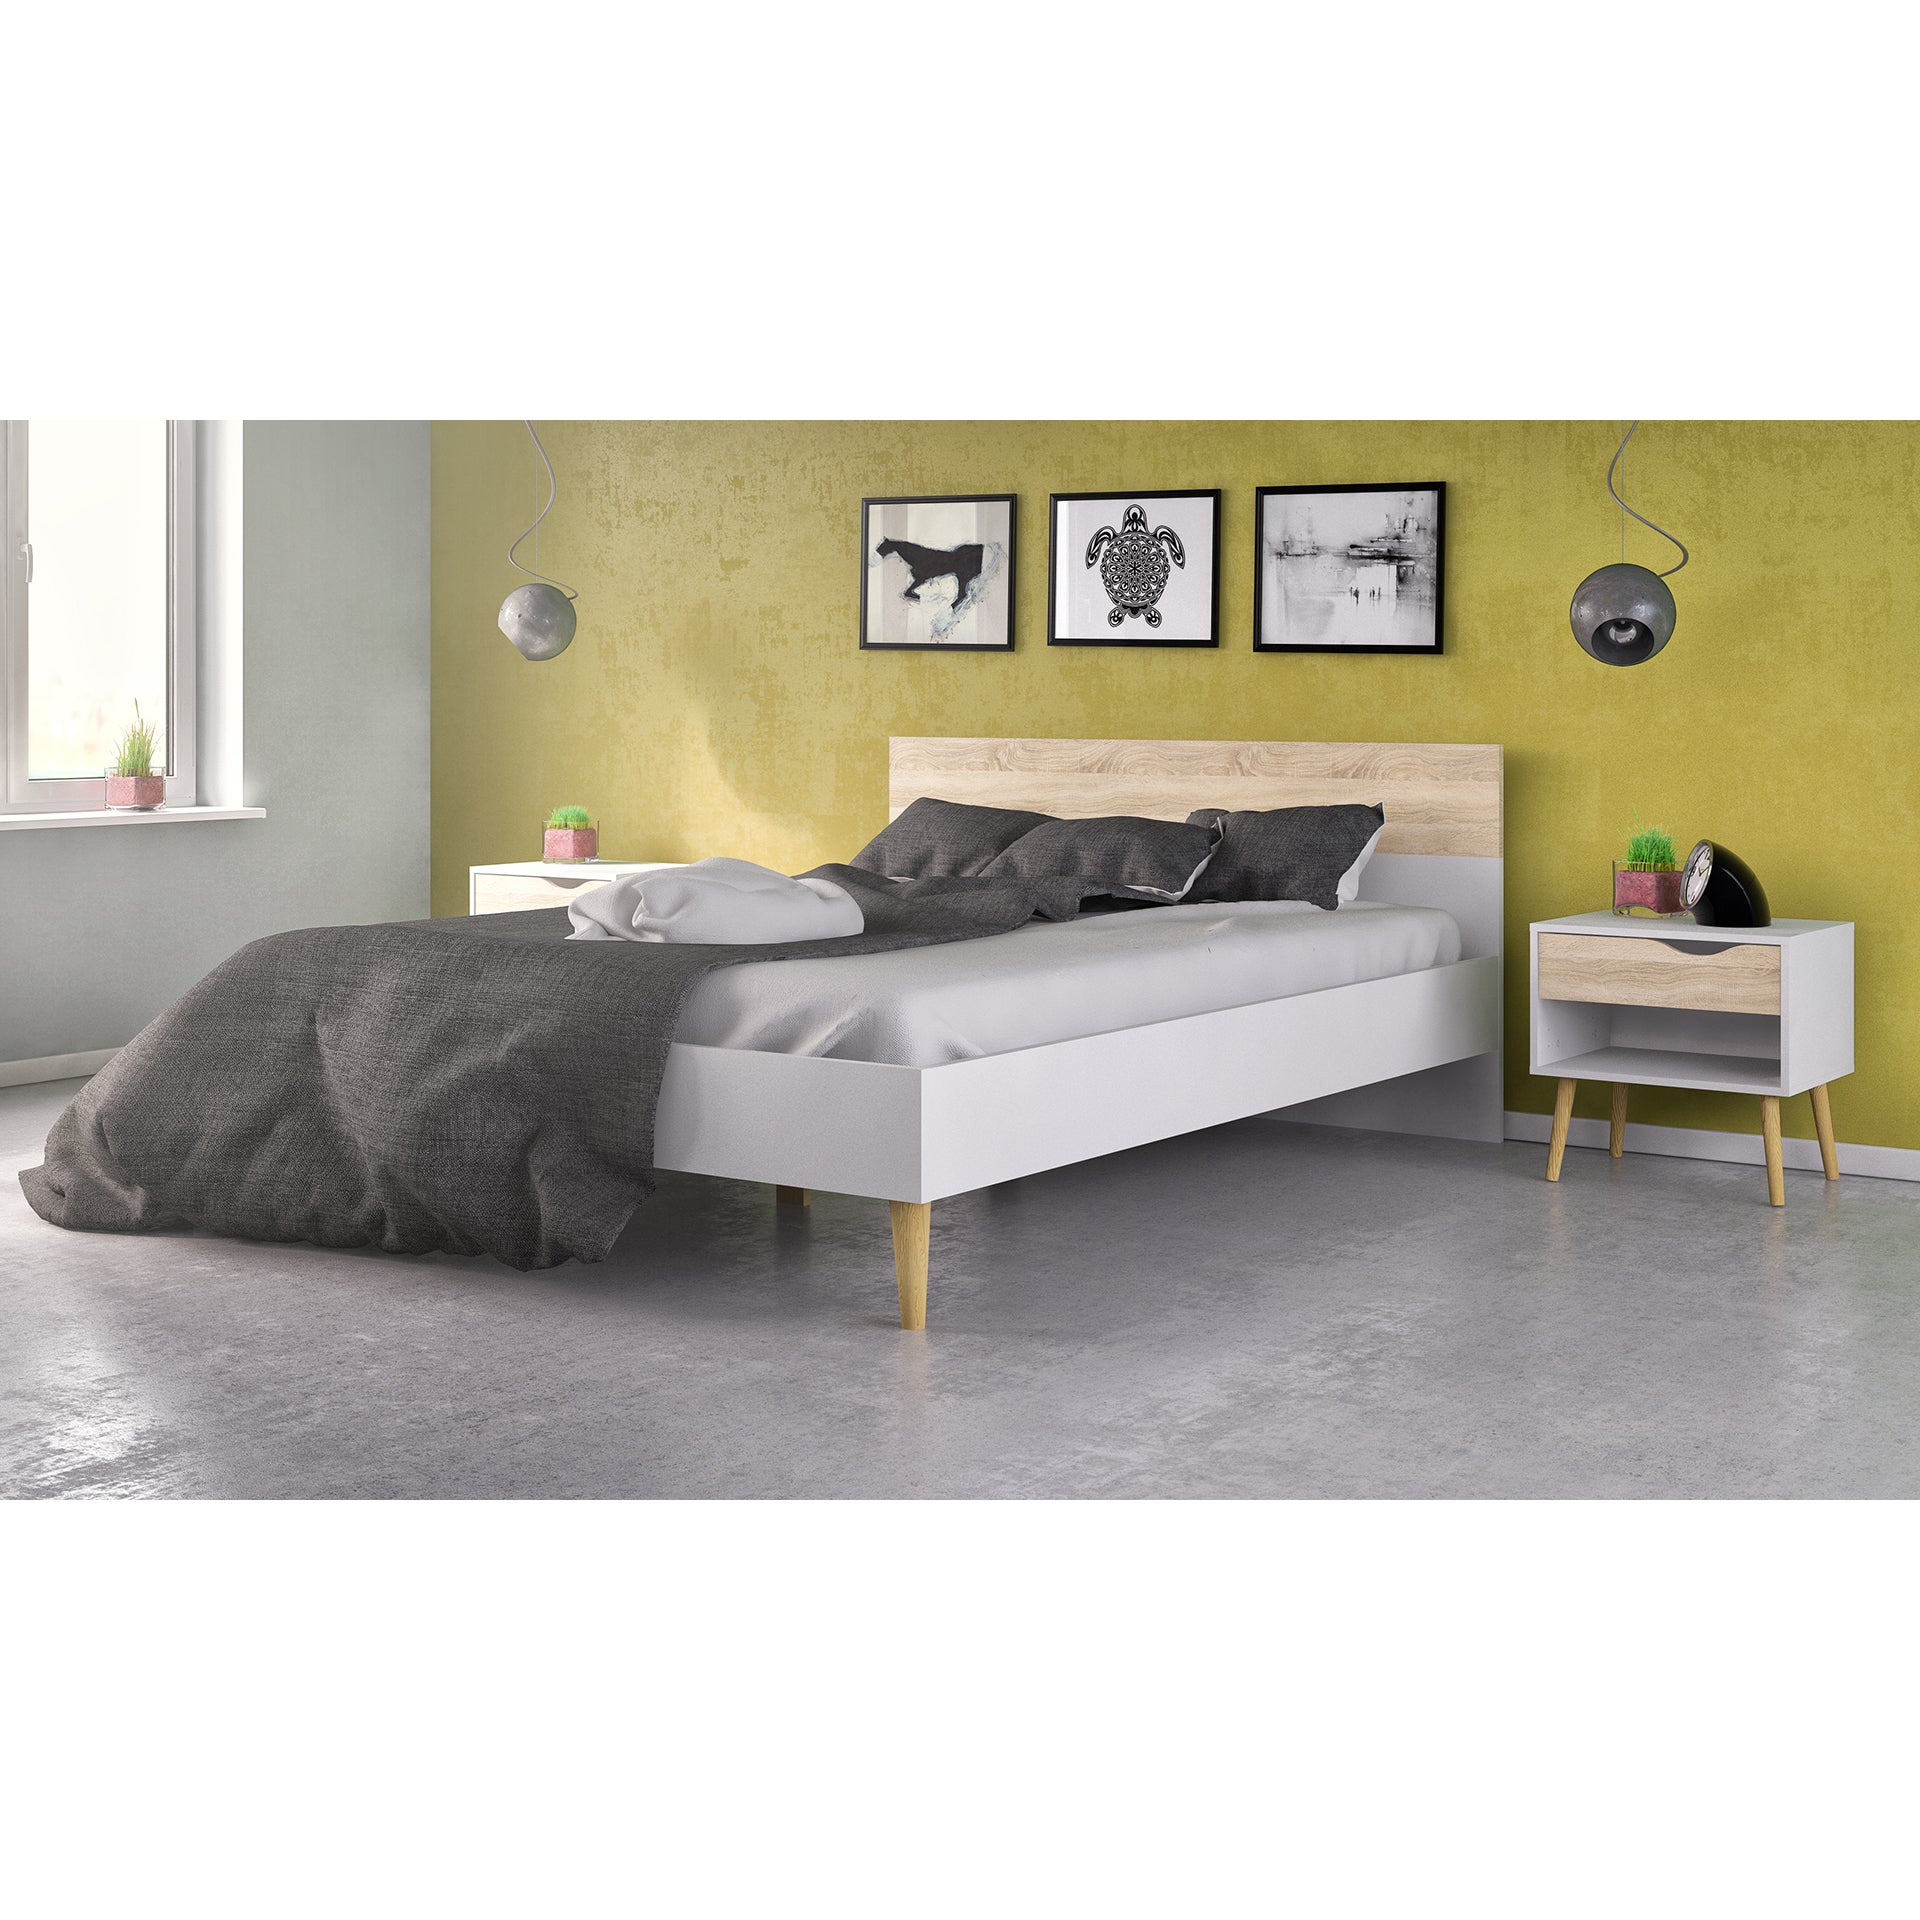 Shop Diana Two-tone Wooden Queen Bed - Free Shipping On Orders Over ...